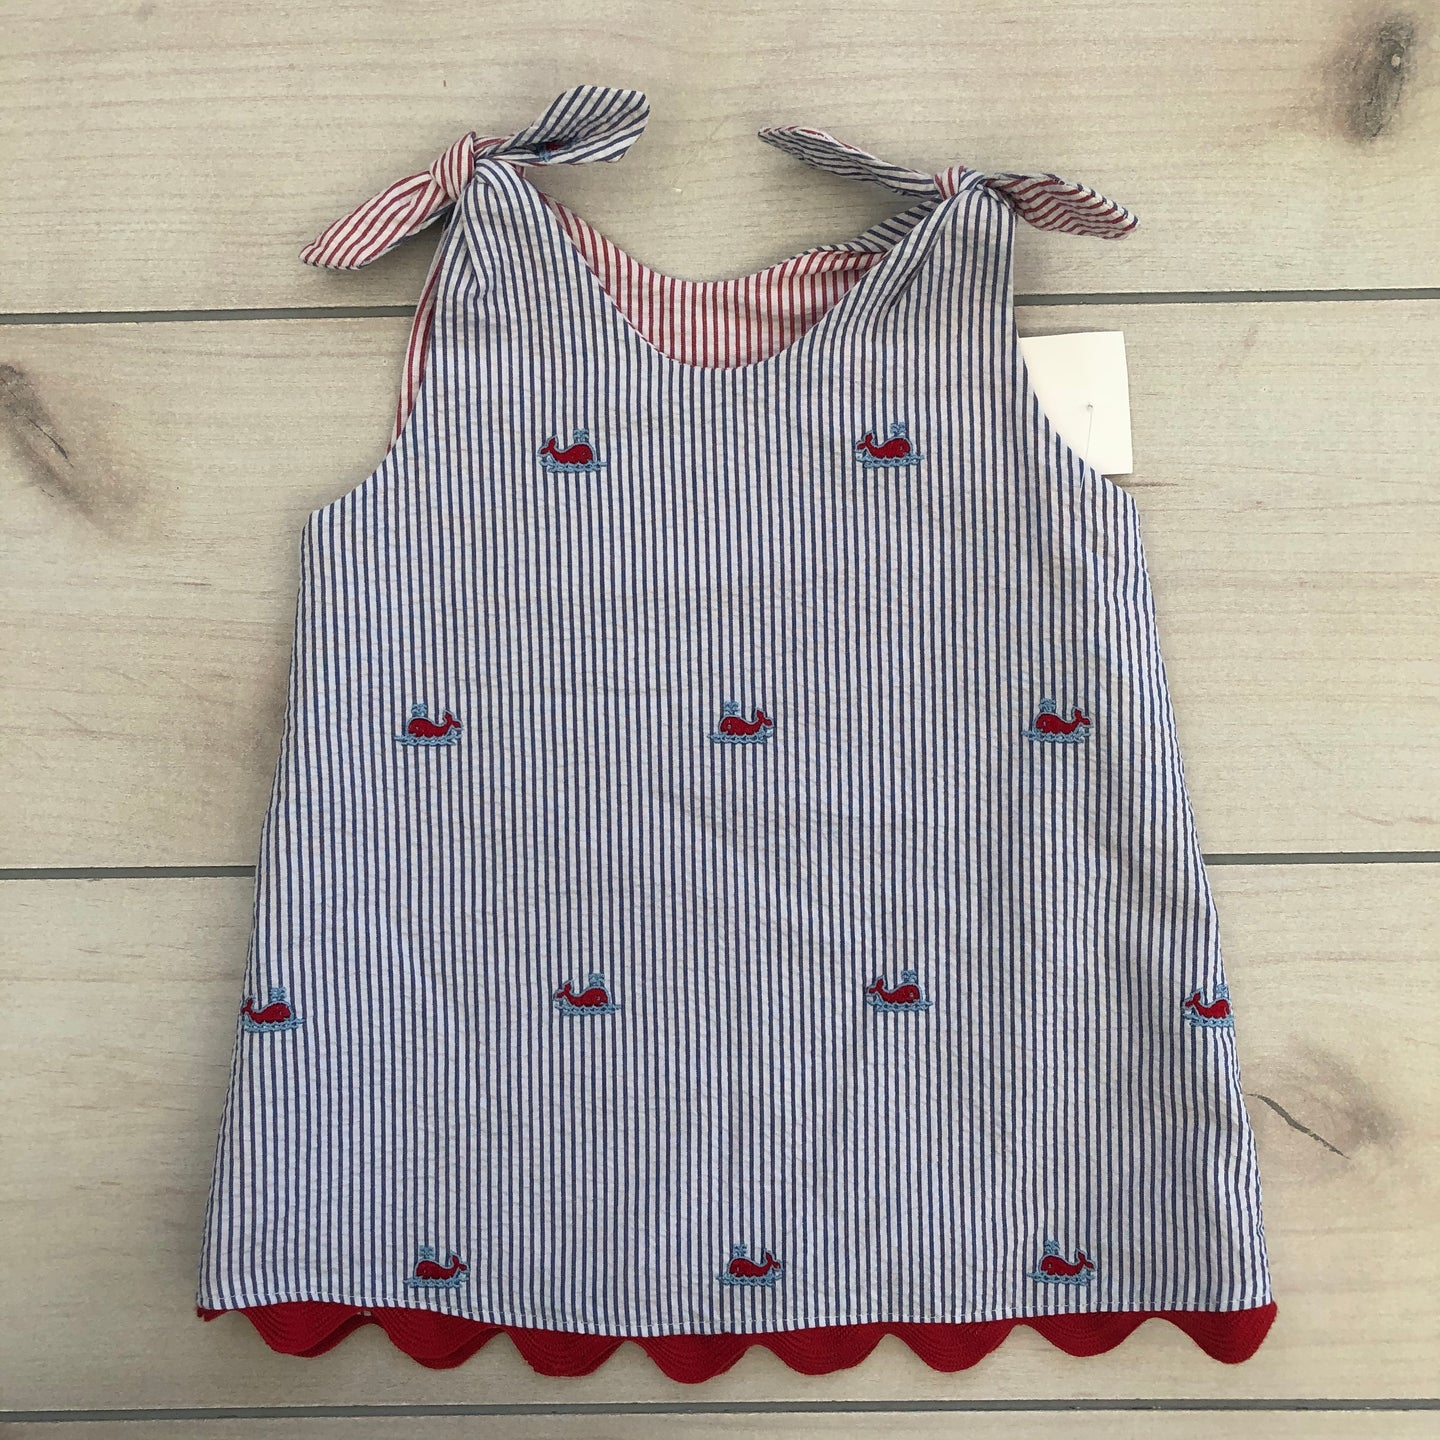 Seersucker Dress with Embroidered Whales Size 18 months NWT